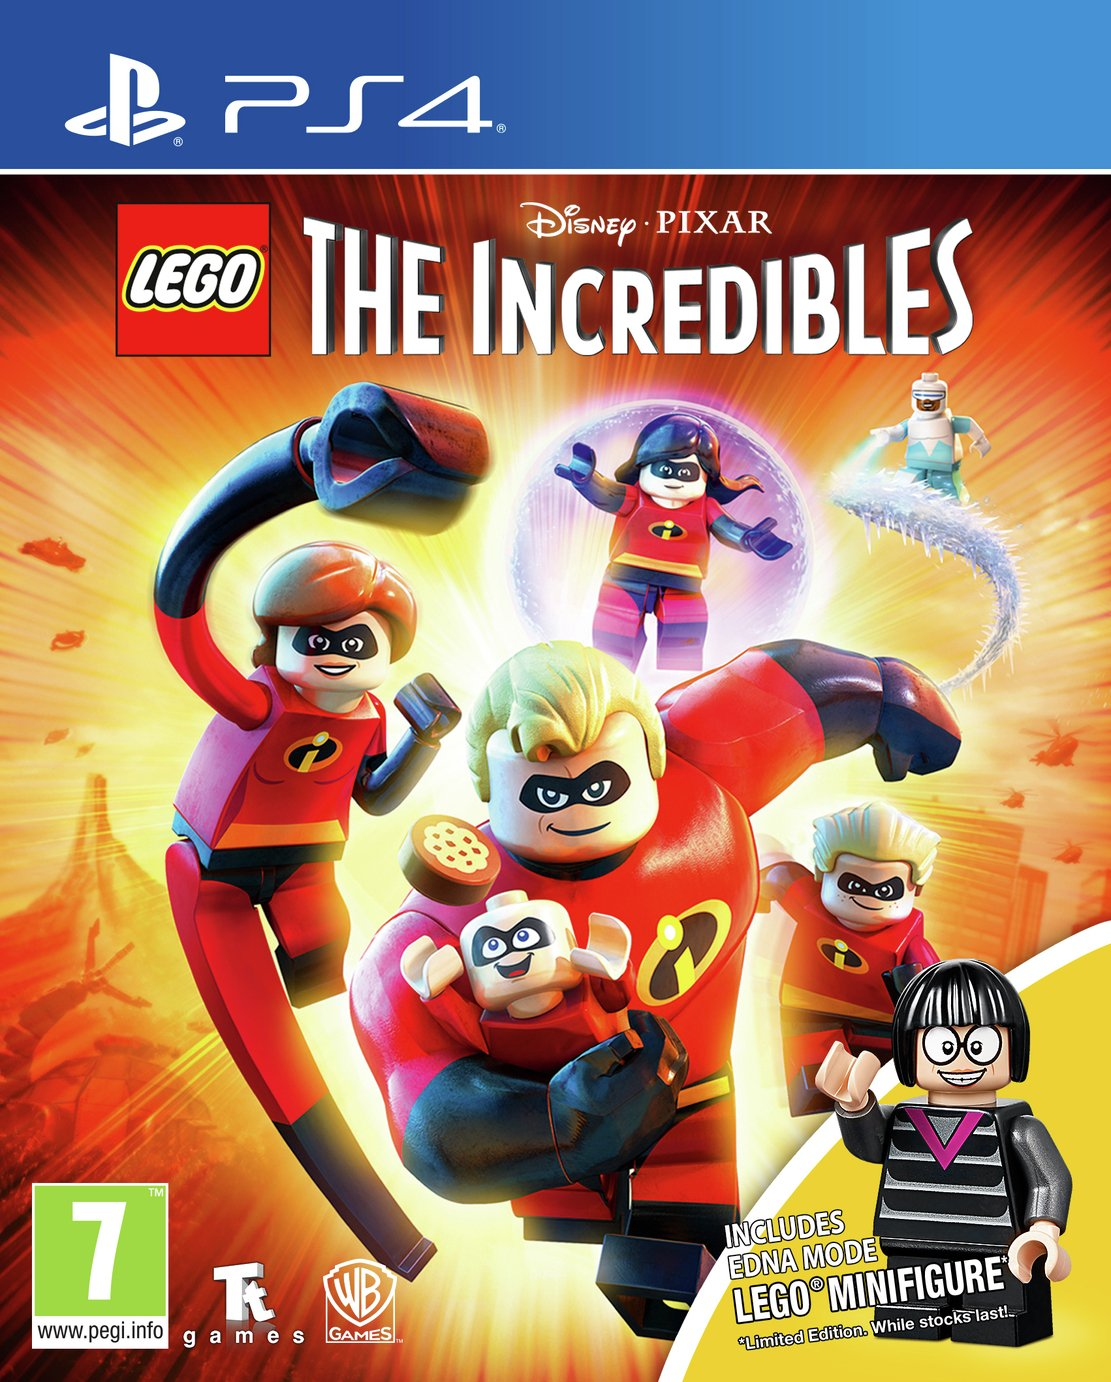 Lego The Incredibles Mini Figure Edition PS4 Game from Lego